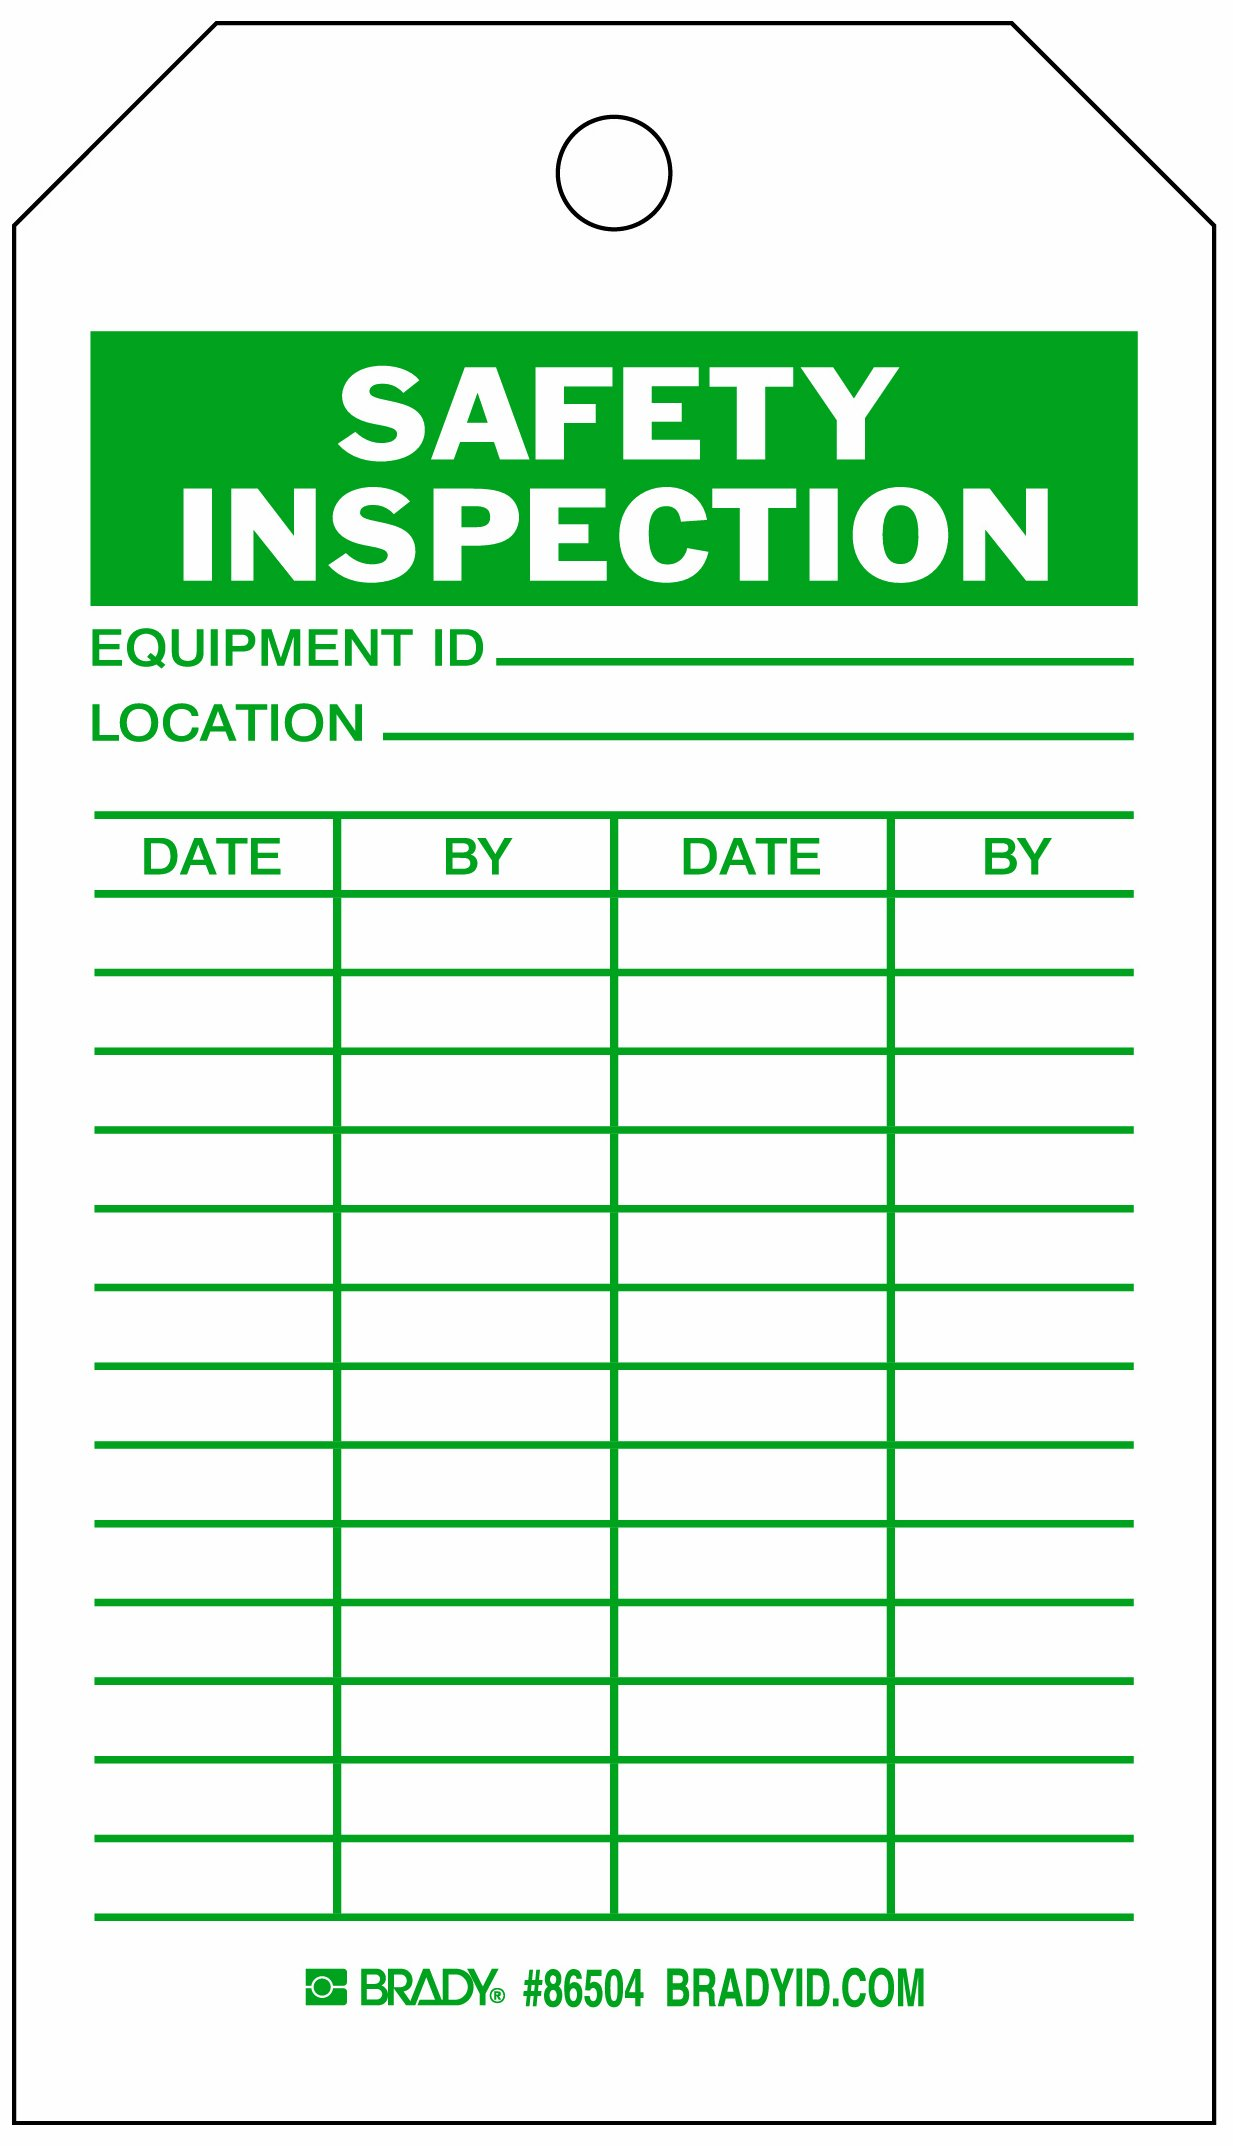 Brady  86504 7'' Height x 4'' Width, Heavy Duty Polyester (B-837), Green on White Safety Inspection Tags (10 Tags) by Brady